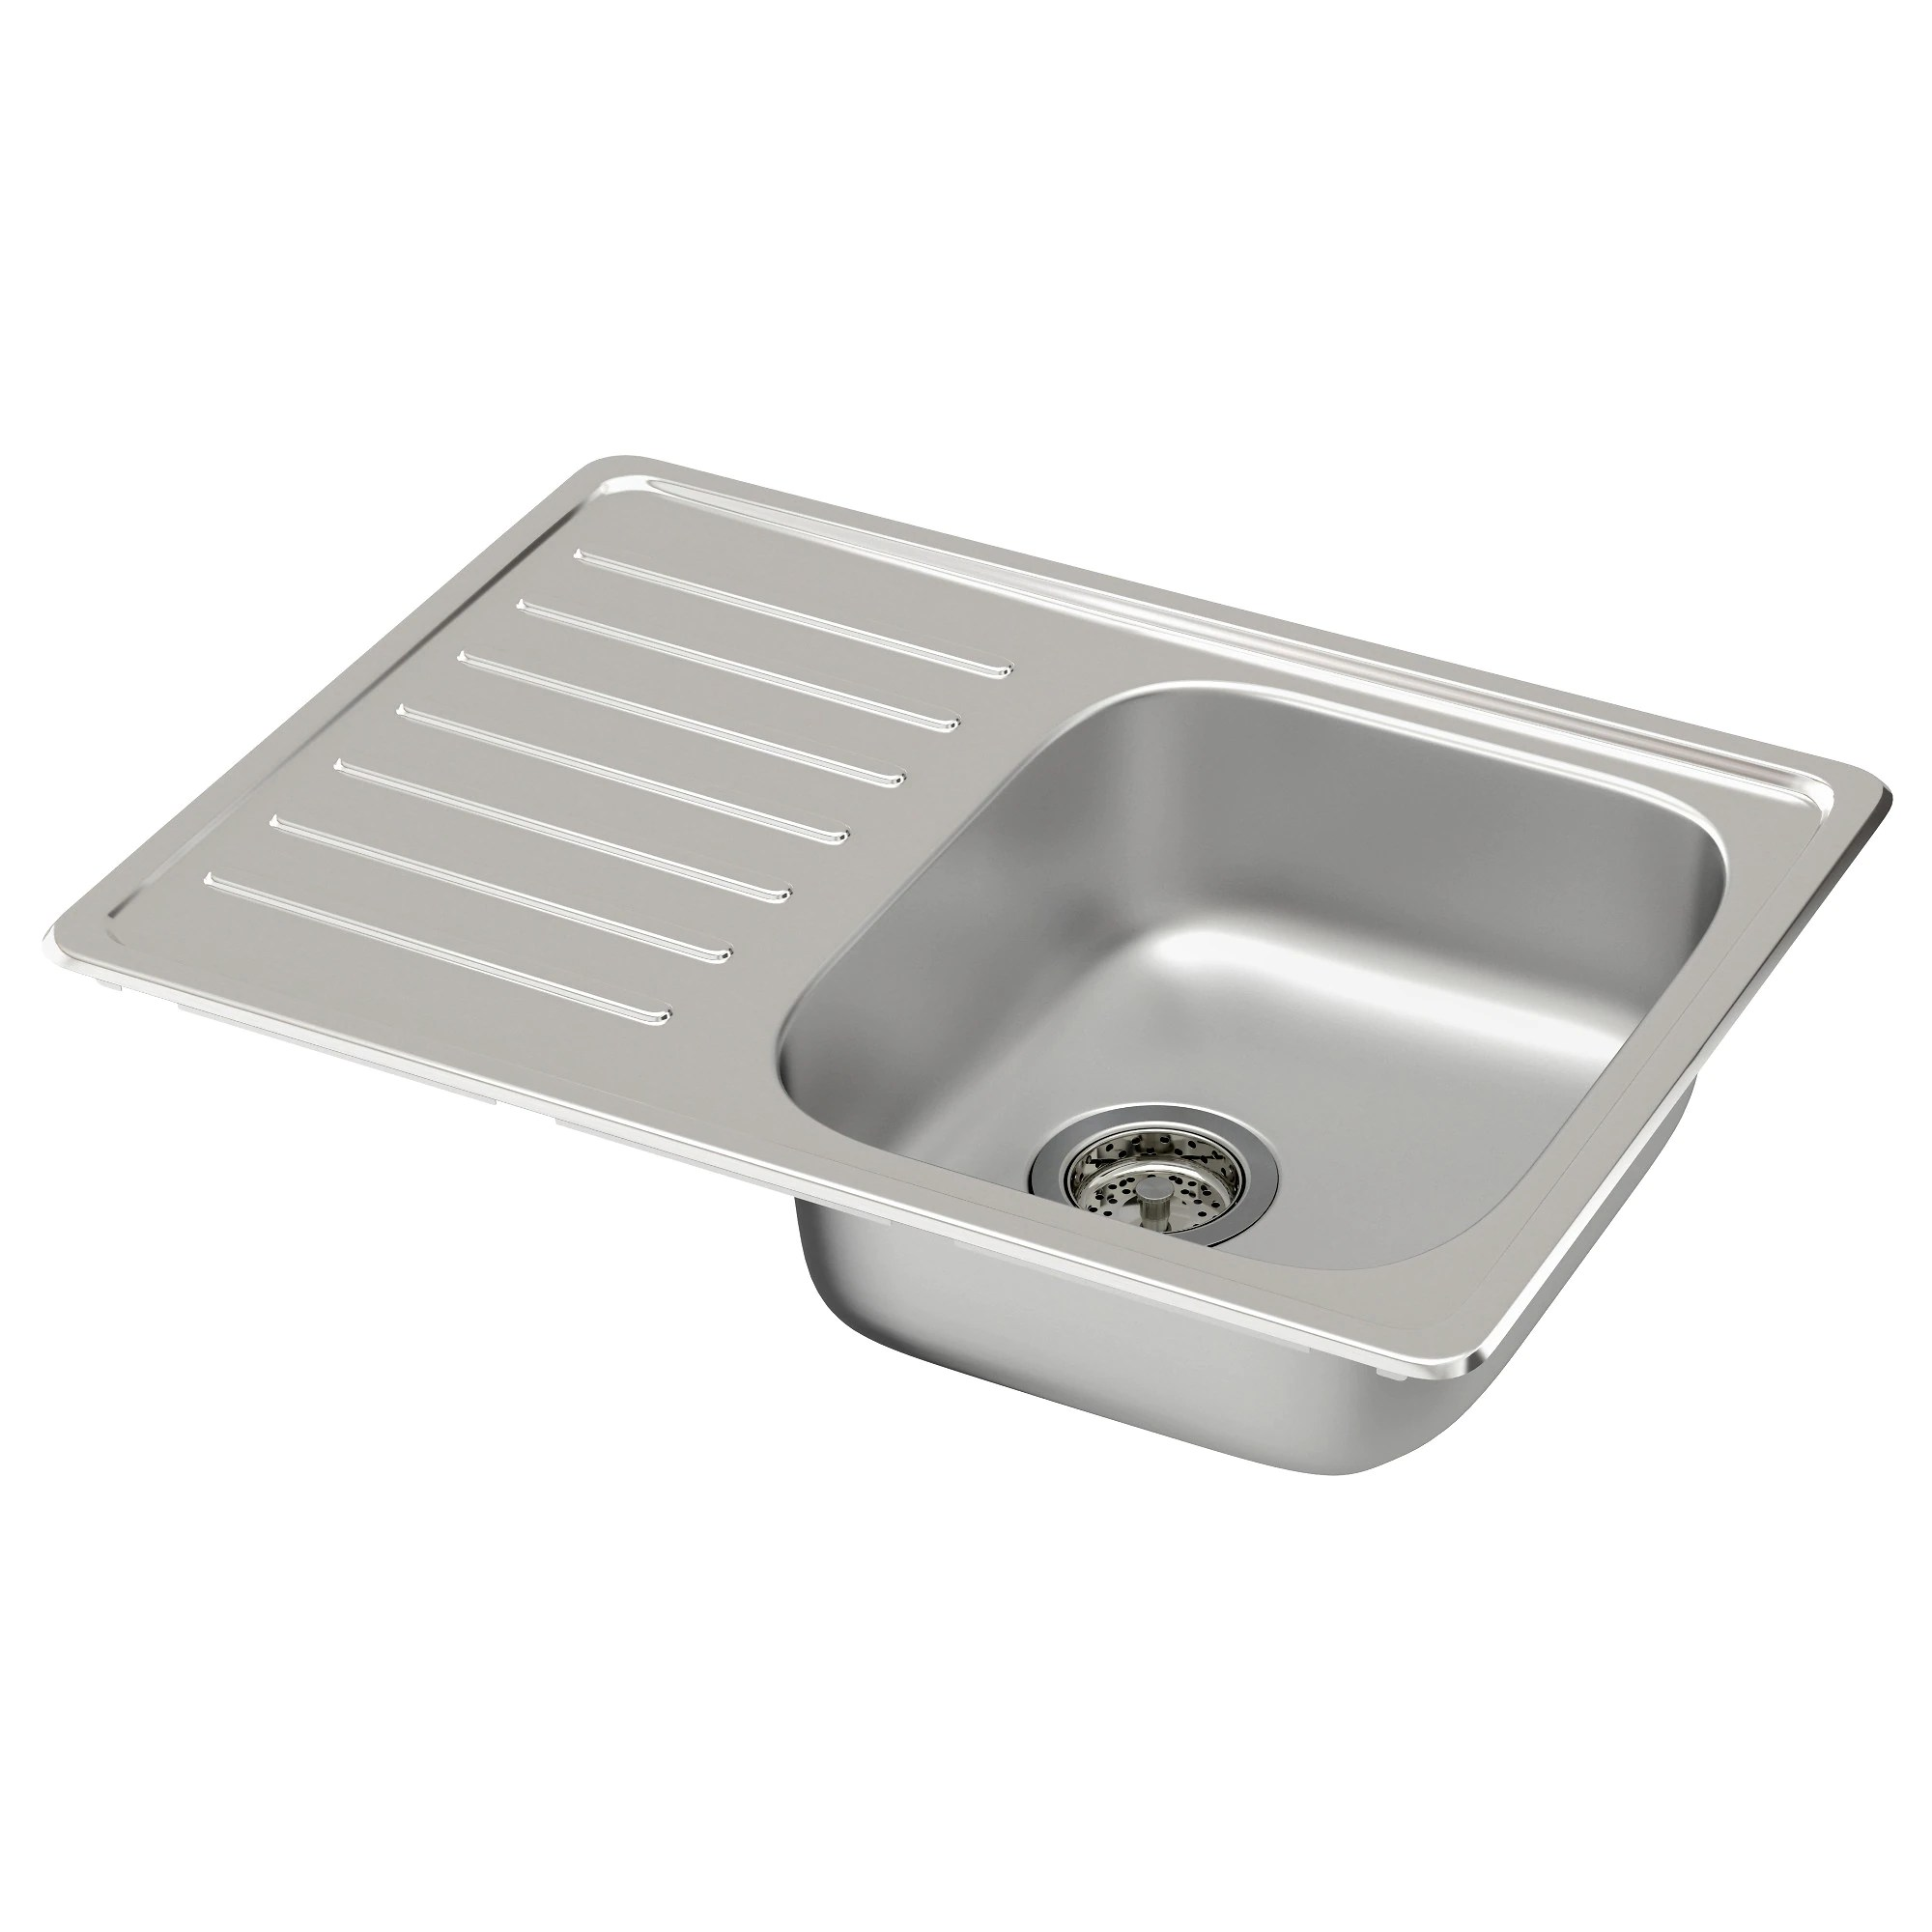 kitchen sink sizes FYNDIG single bowl top mount sink stainless steel Length 27 1 2